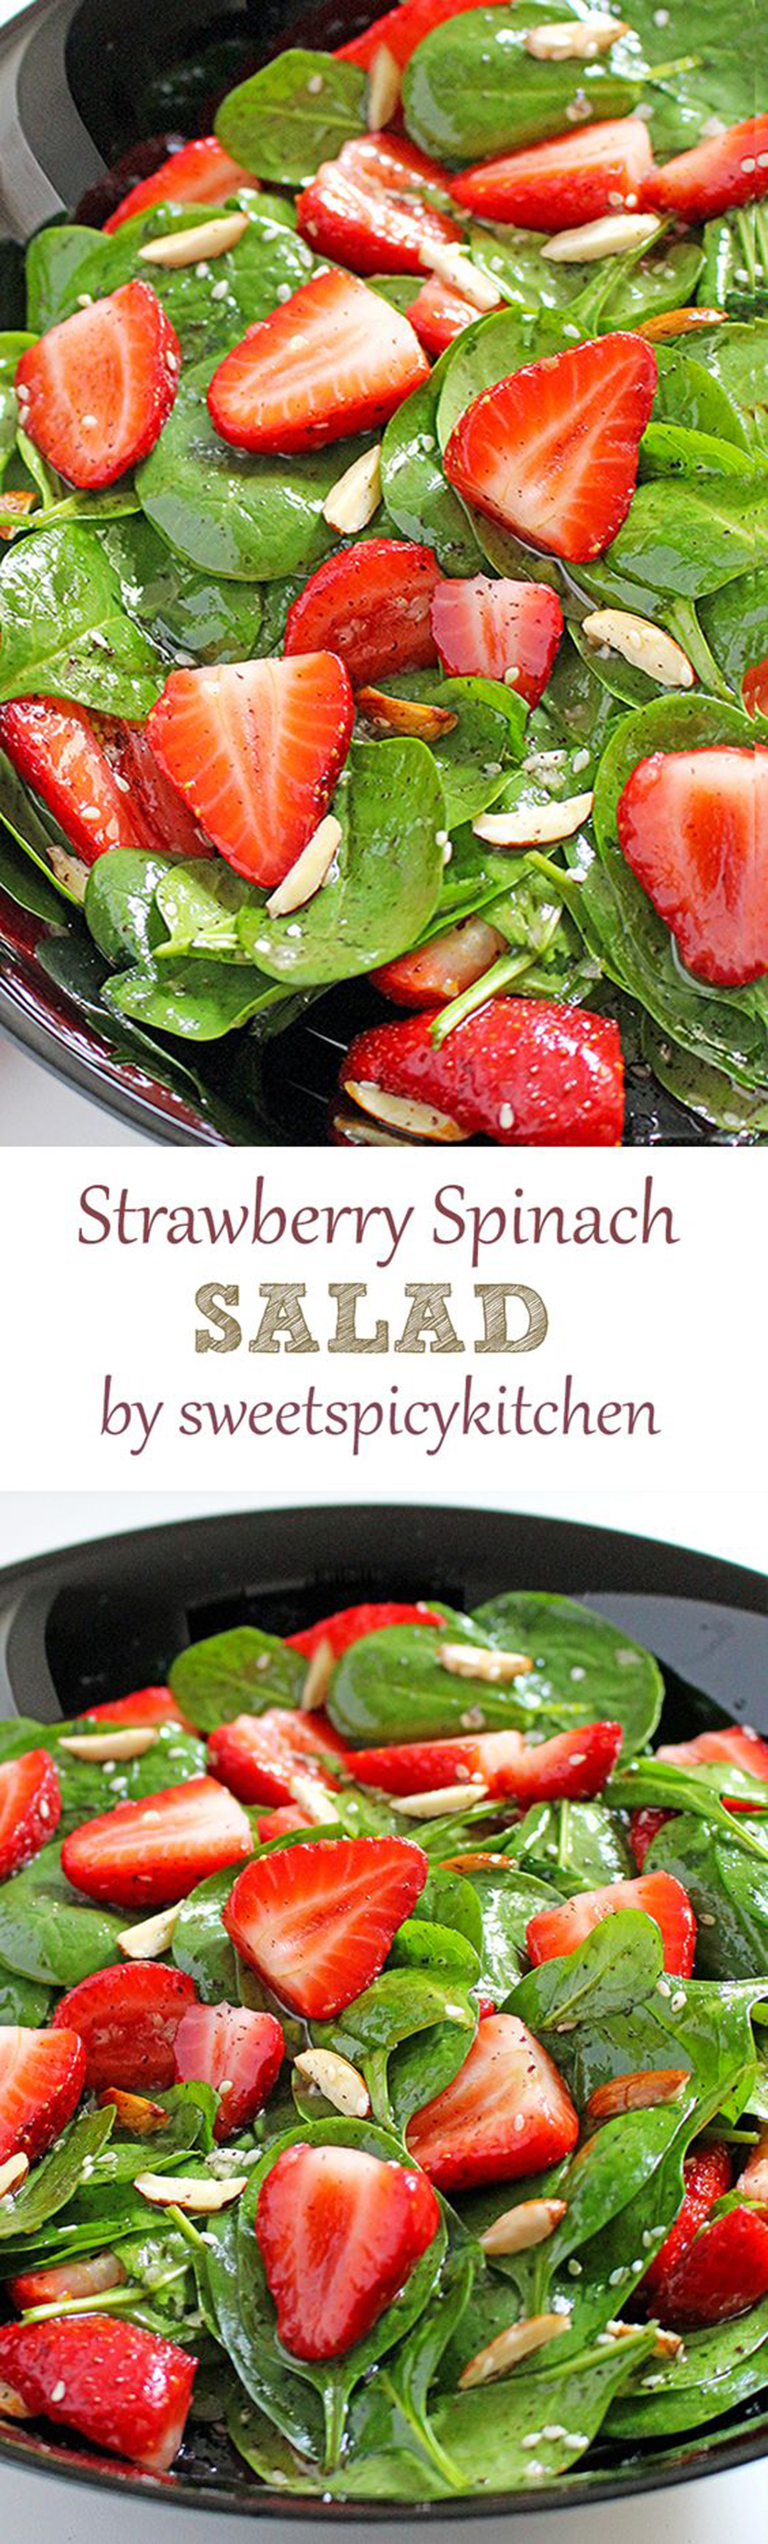 Quick and Easy Strawberry Spinach Almond Salad a great refreshing salad for these spring/summer days..